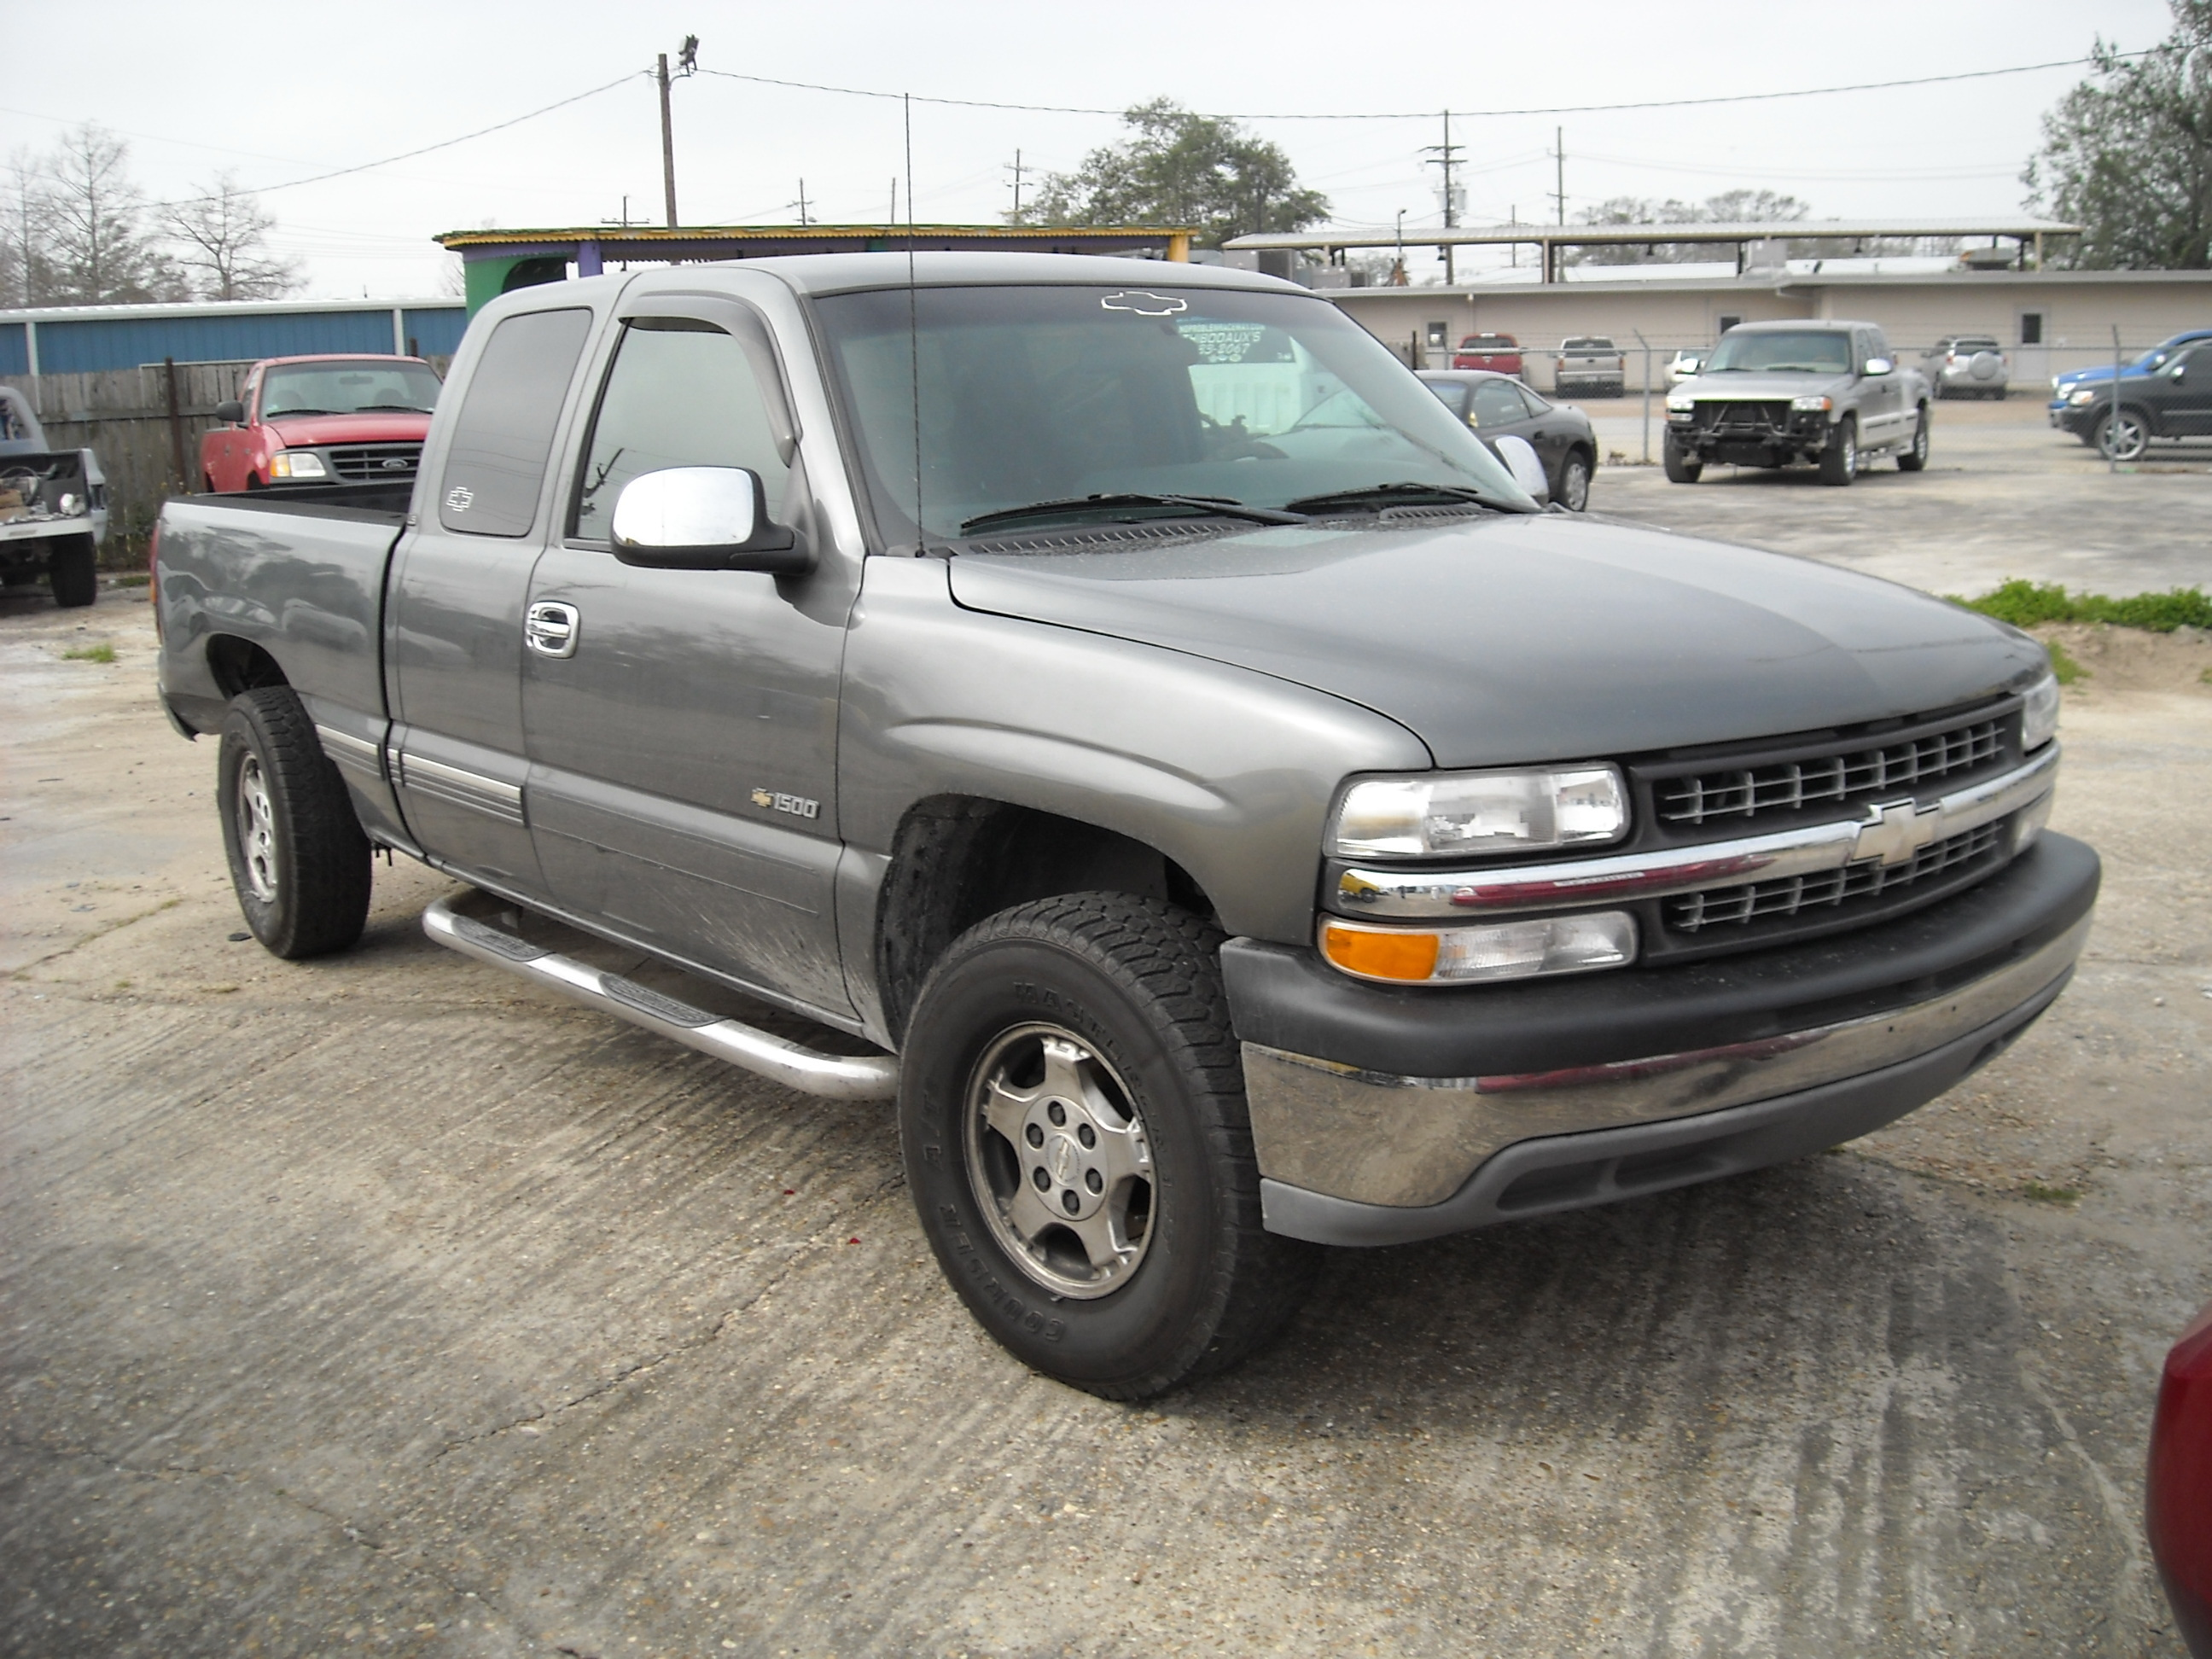 macsautomotive 2001 chevrolet silverado 1500 regular cab. Black Bedroom Furniture Sets. Home Design Ideas